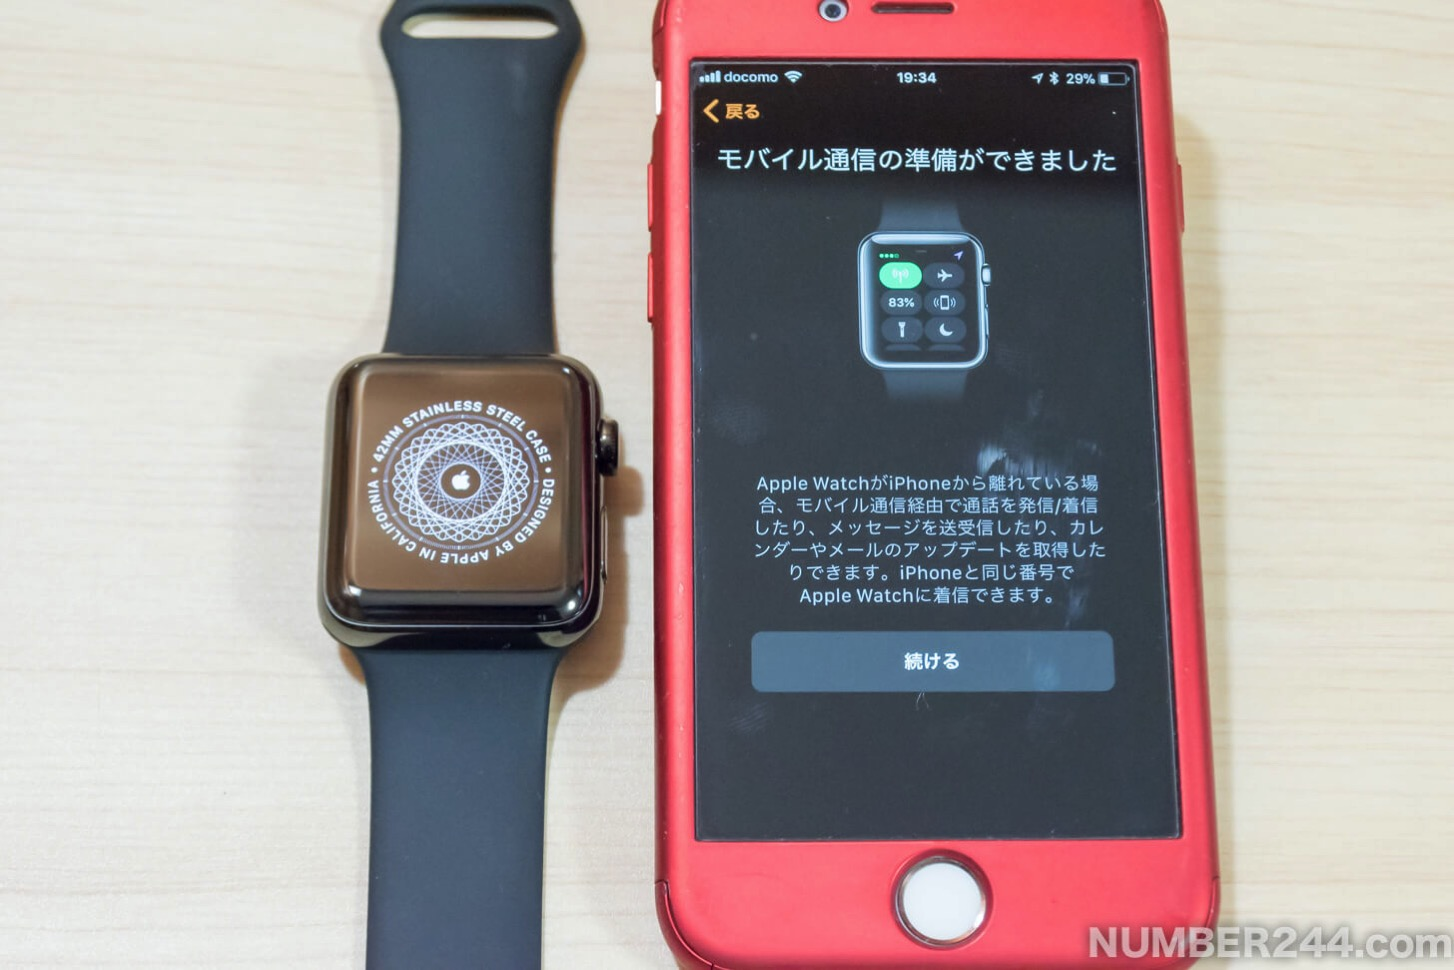 Initial setting of Apple Watch 20